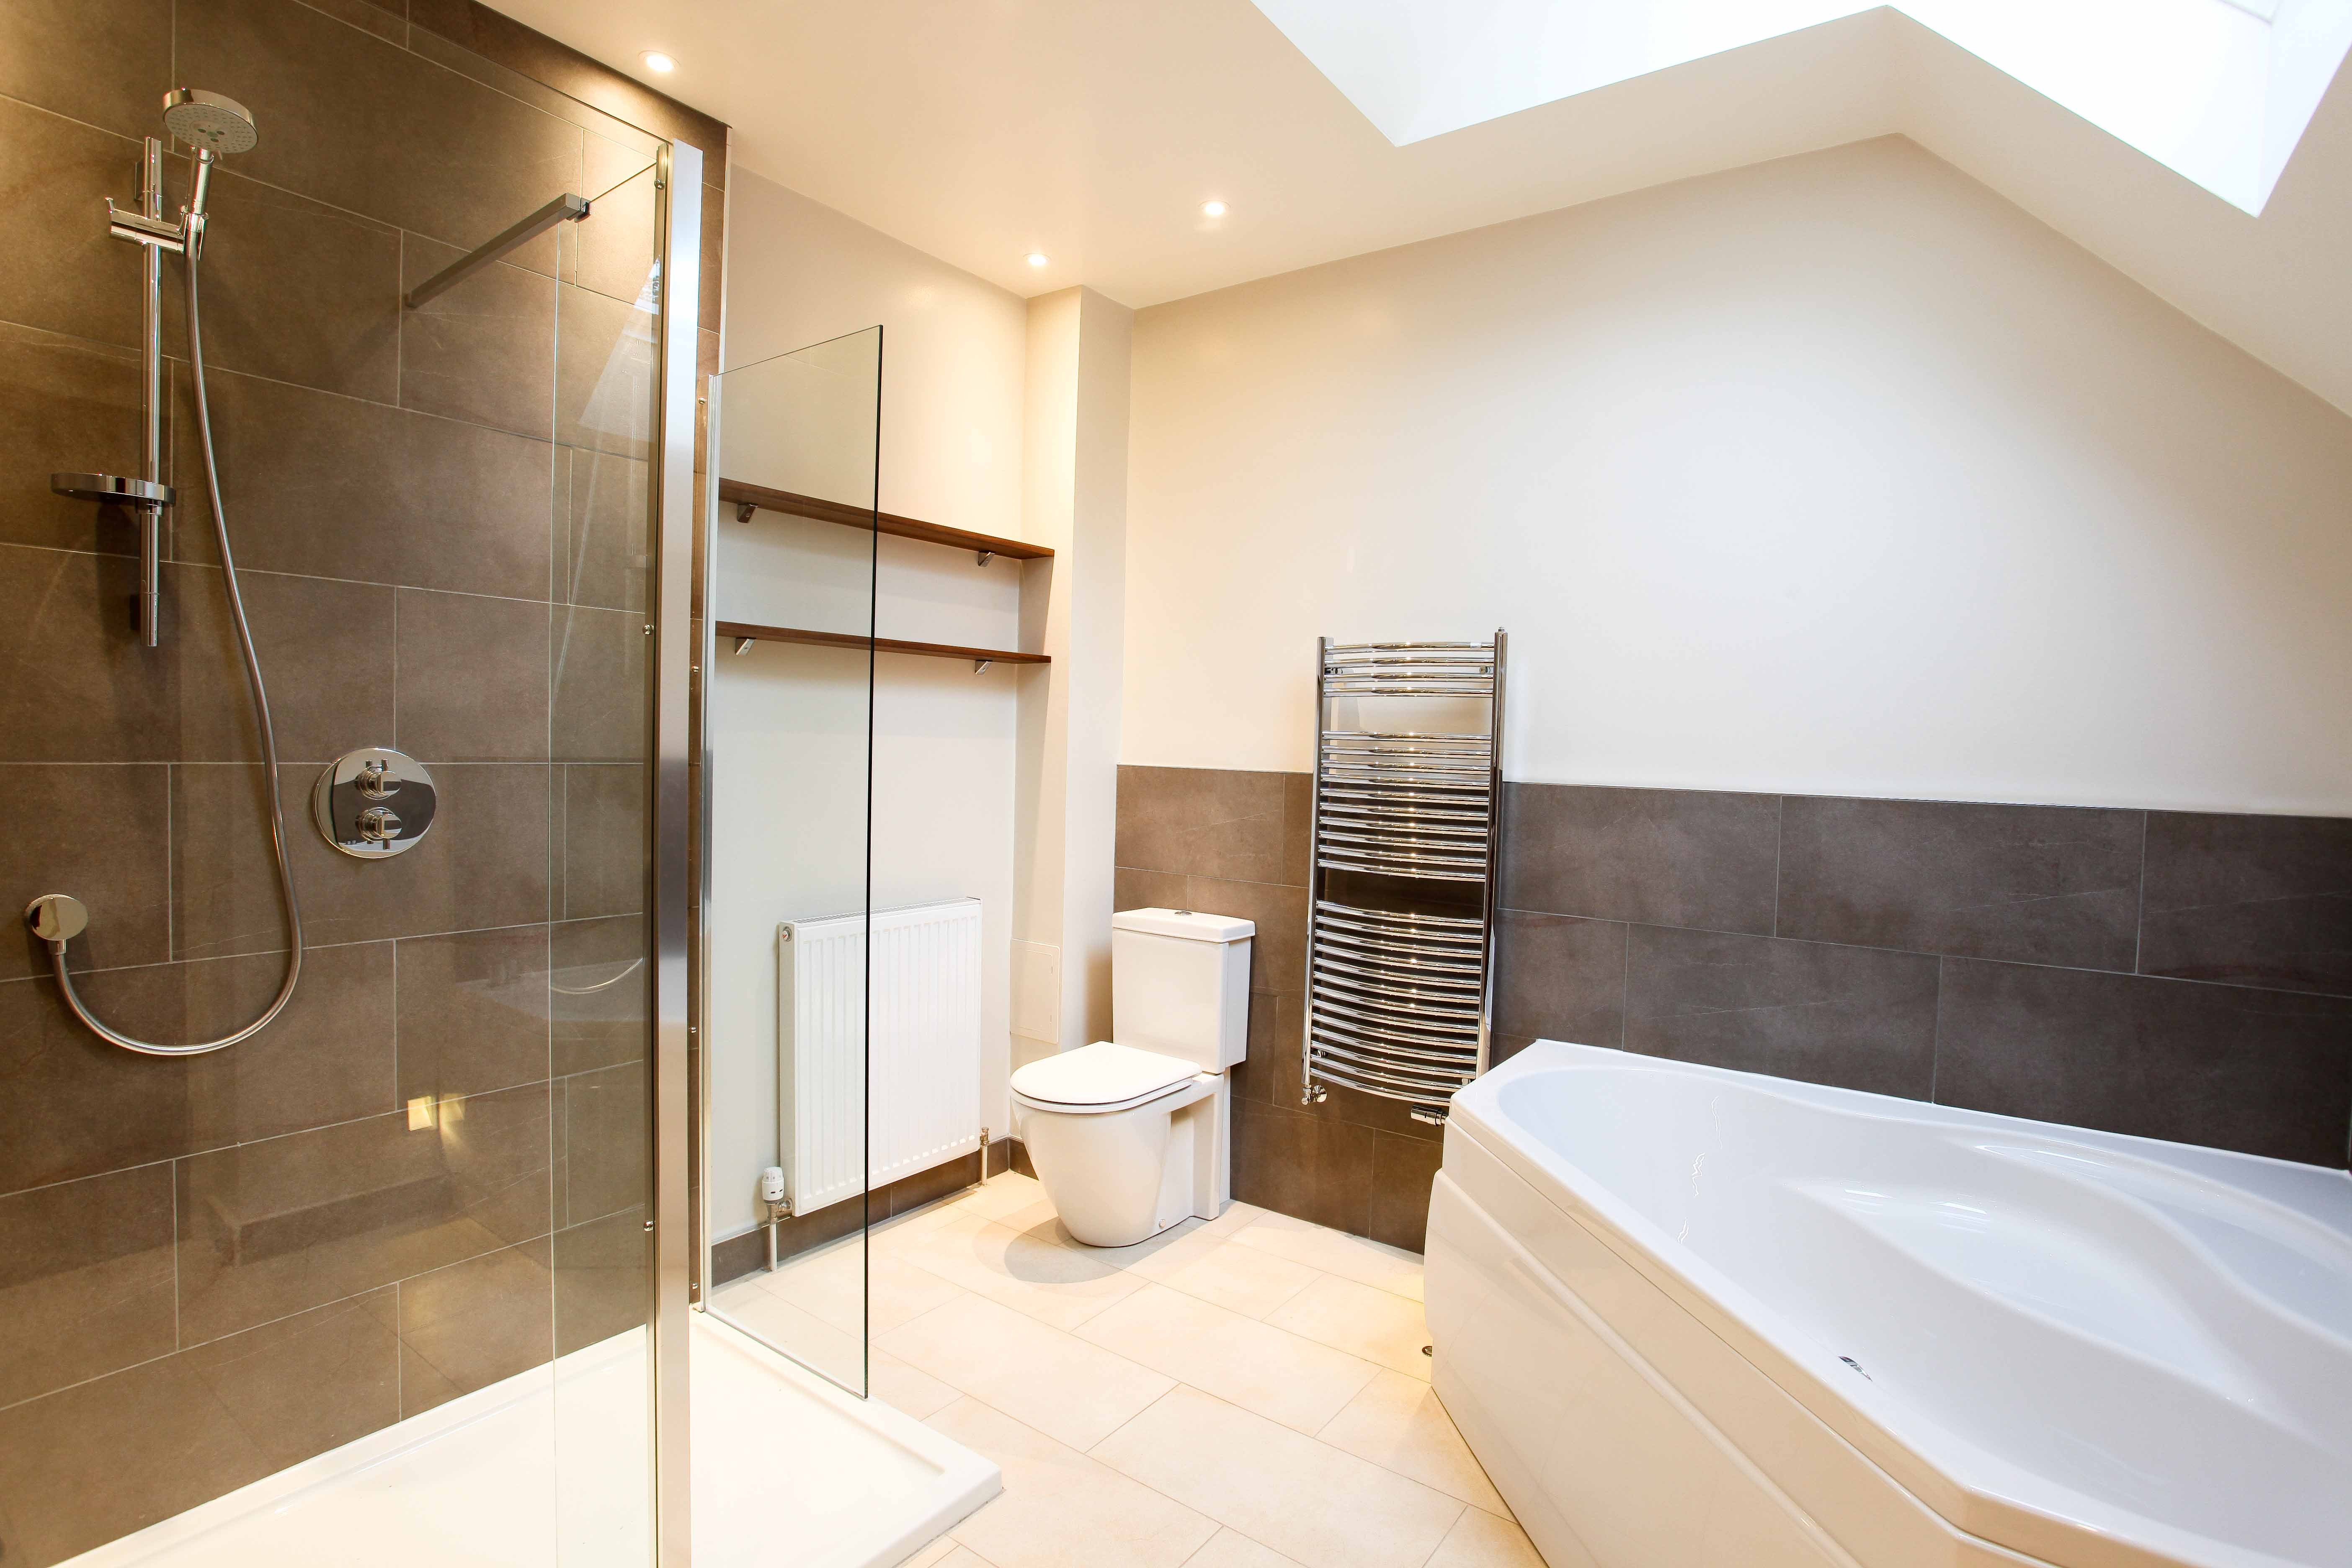 Specialist Bathroom with half height tiling.